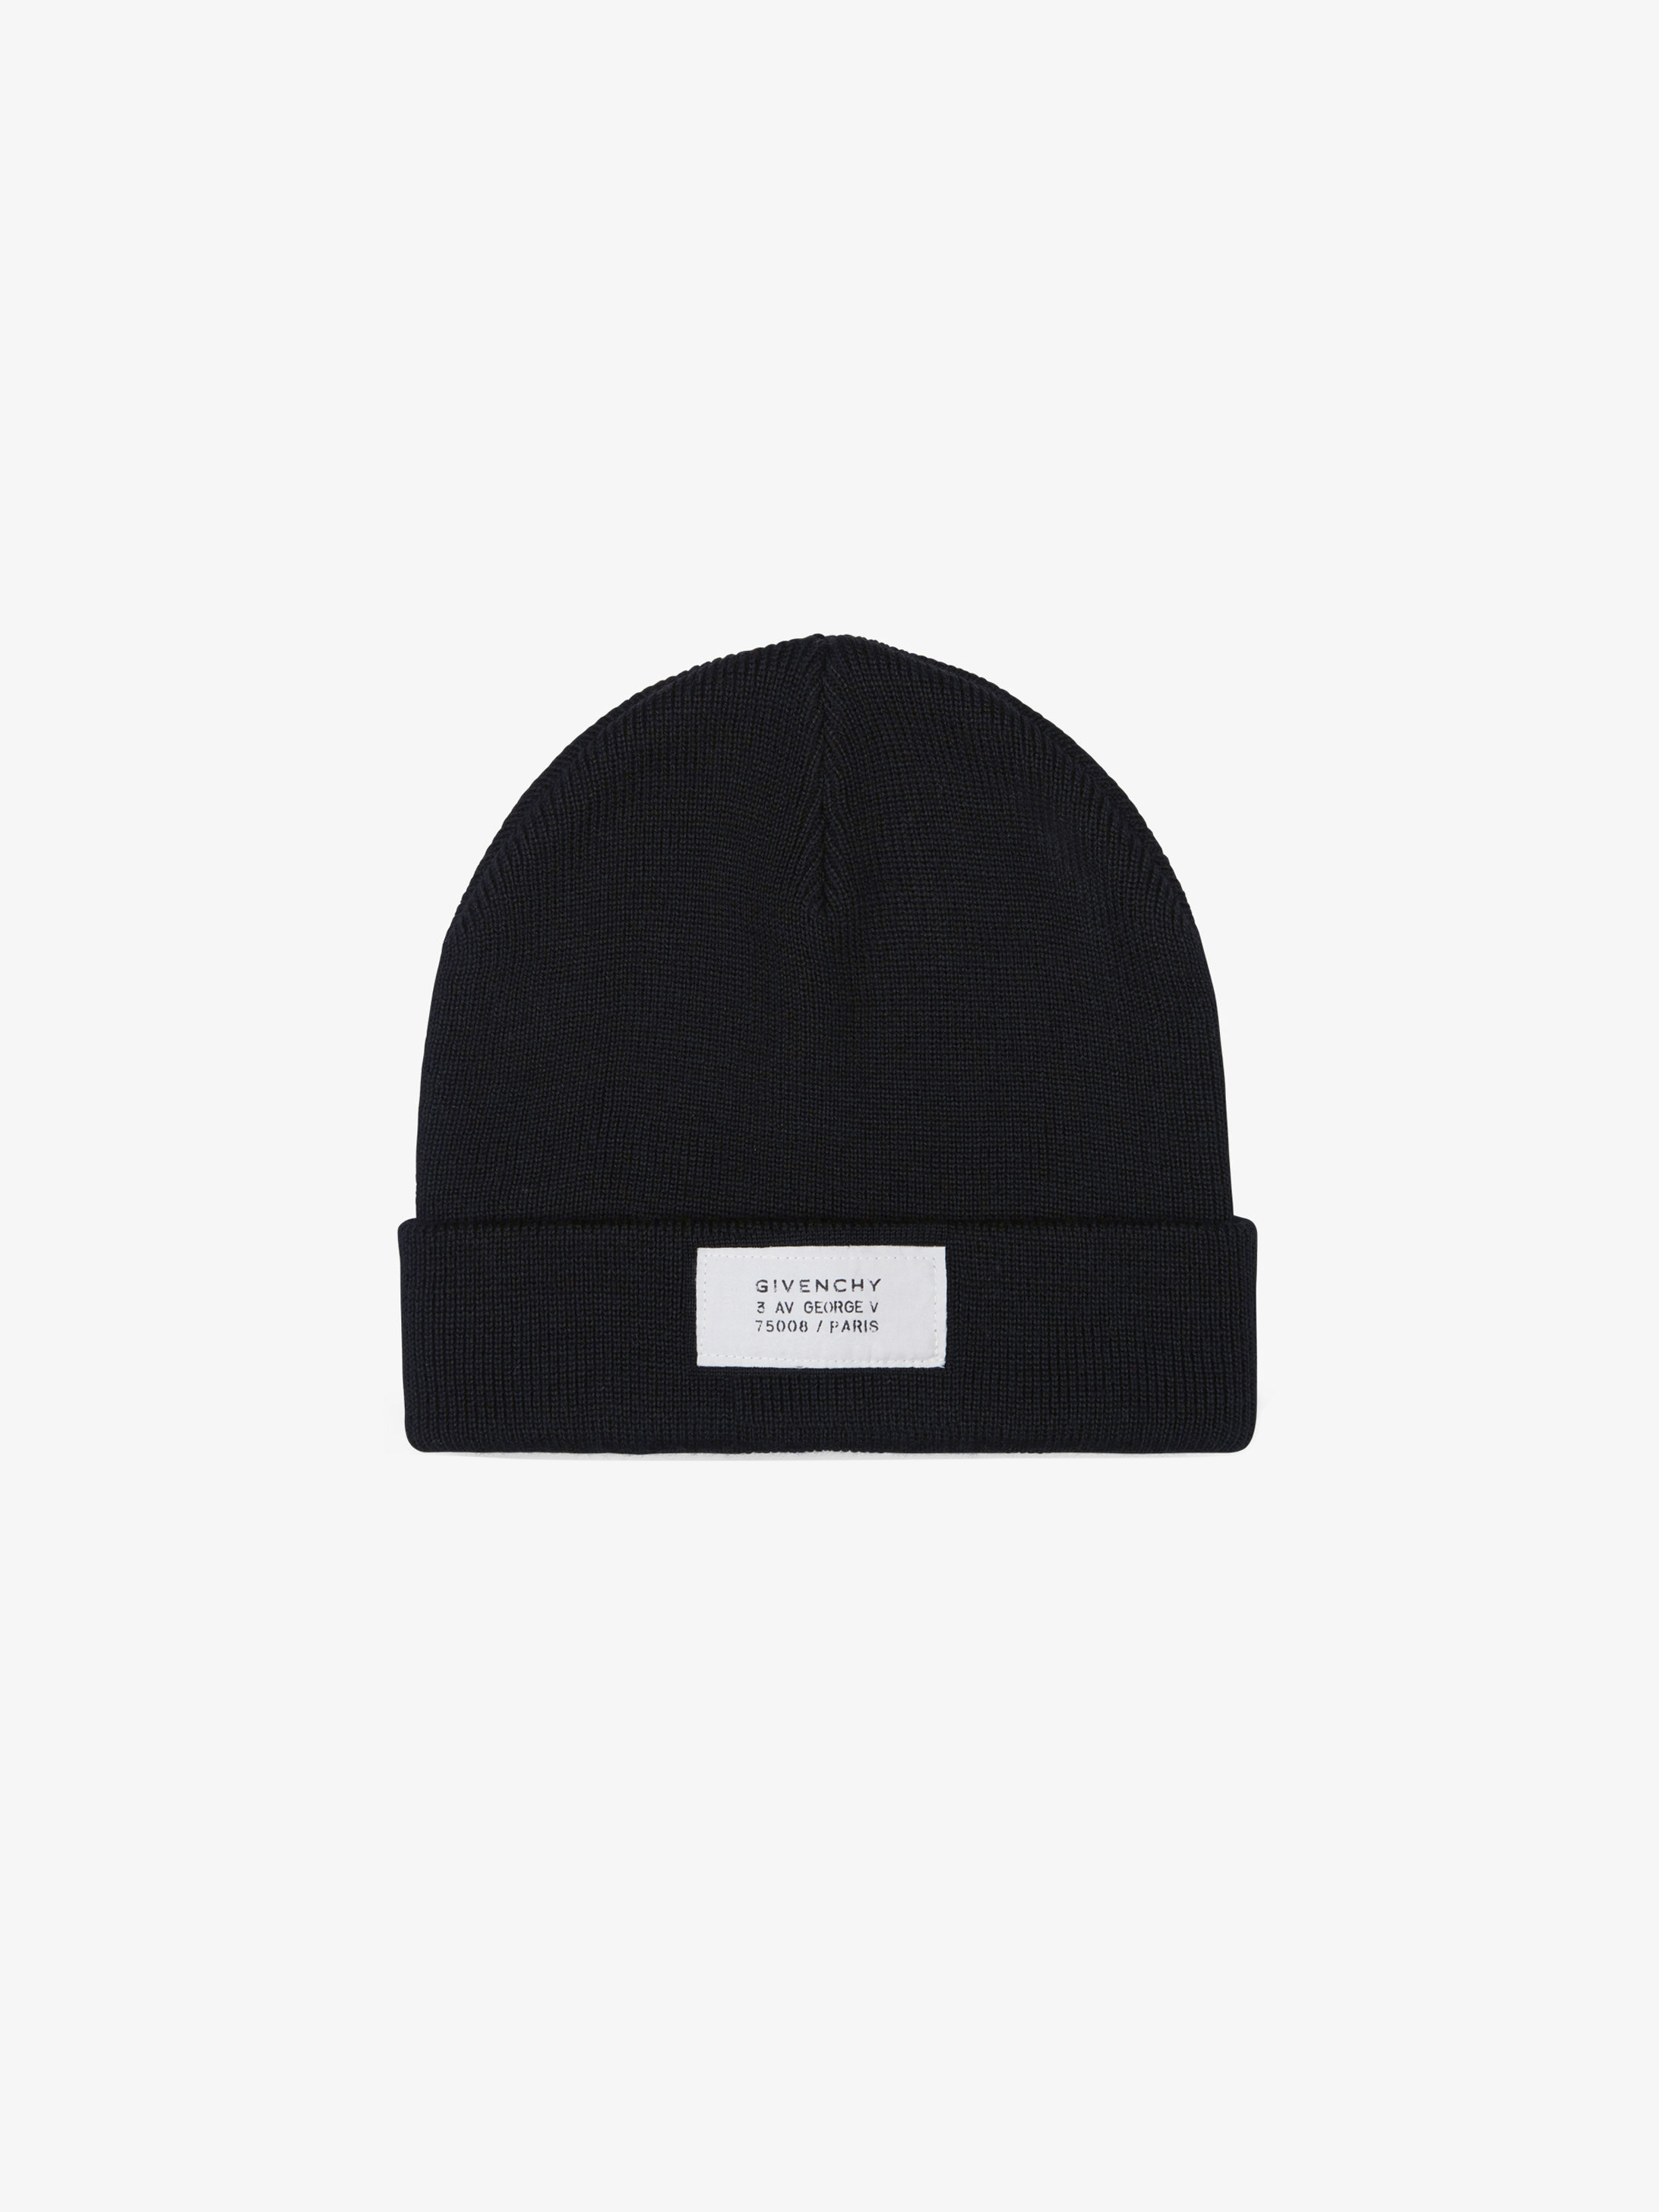 GIVENCHY Atelier patch beanie